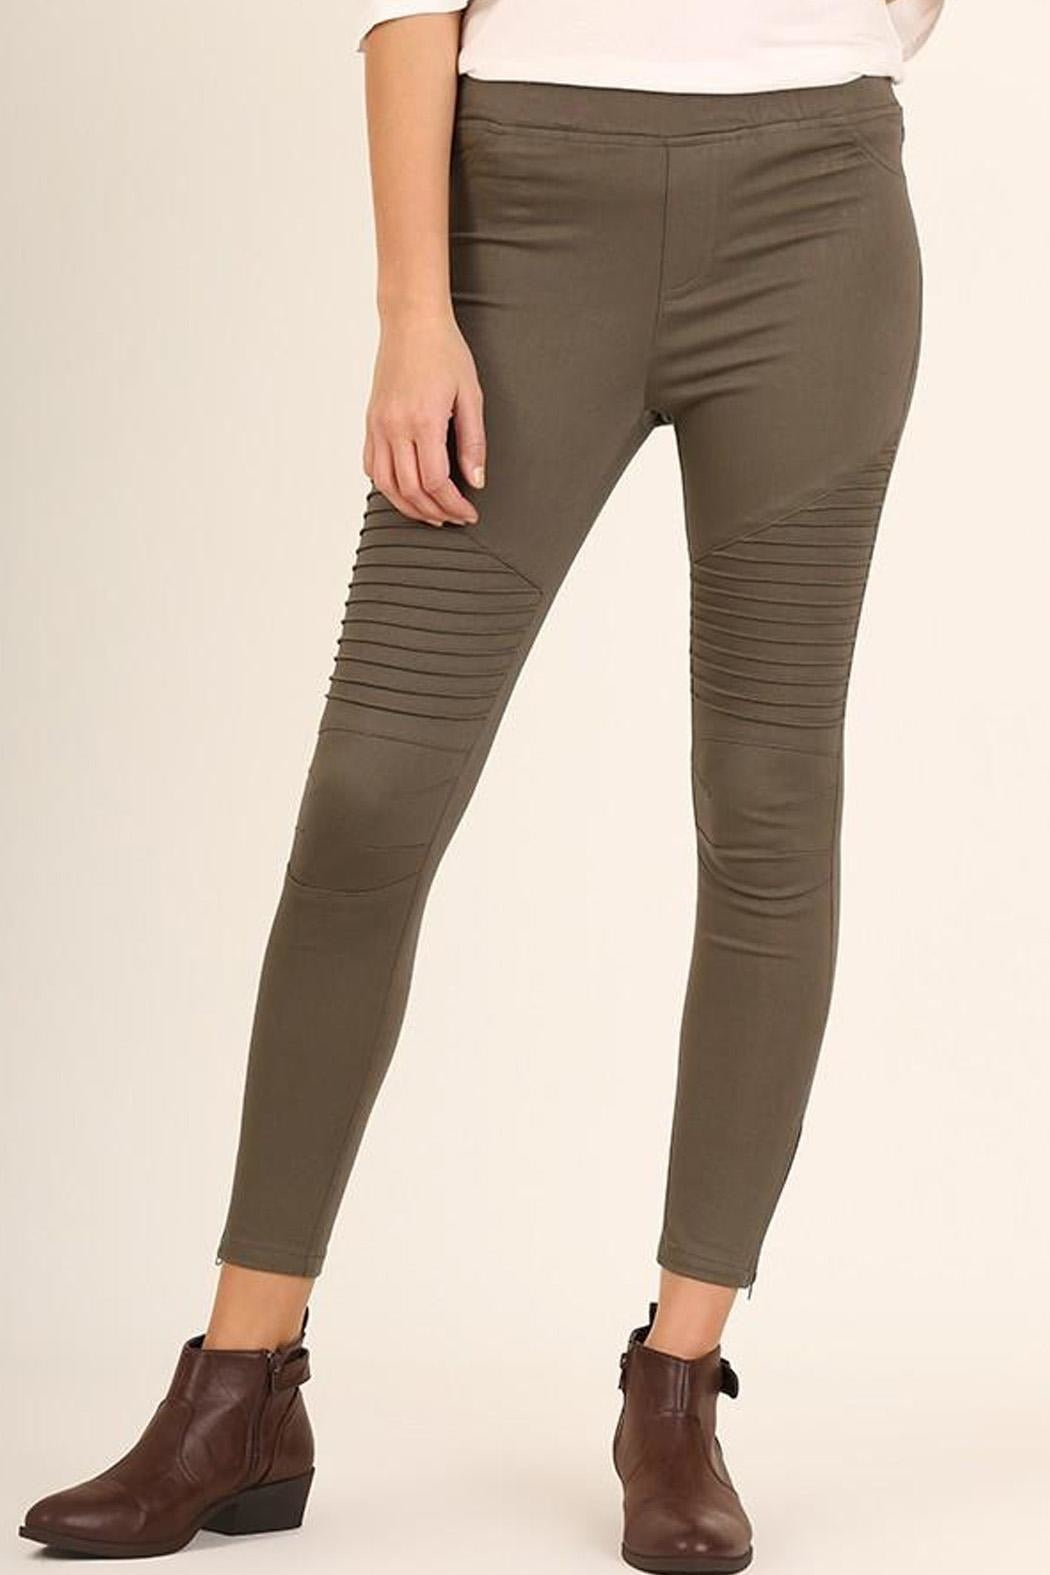 Olive Moto Jeggings with Zipper Detail